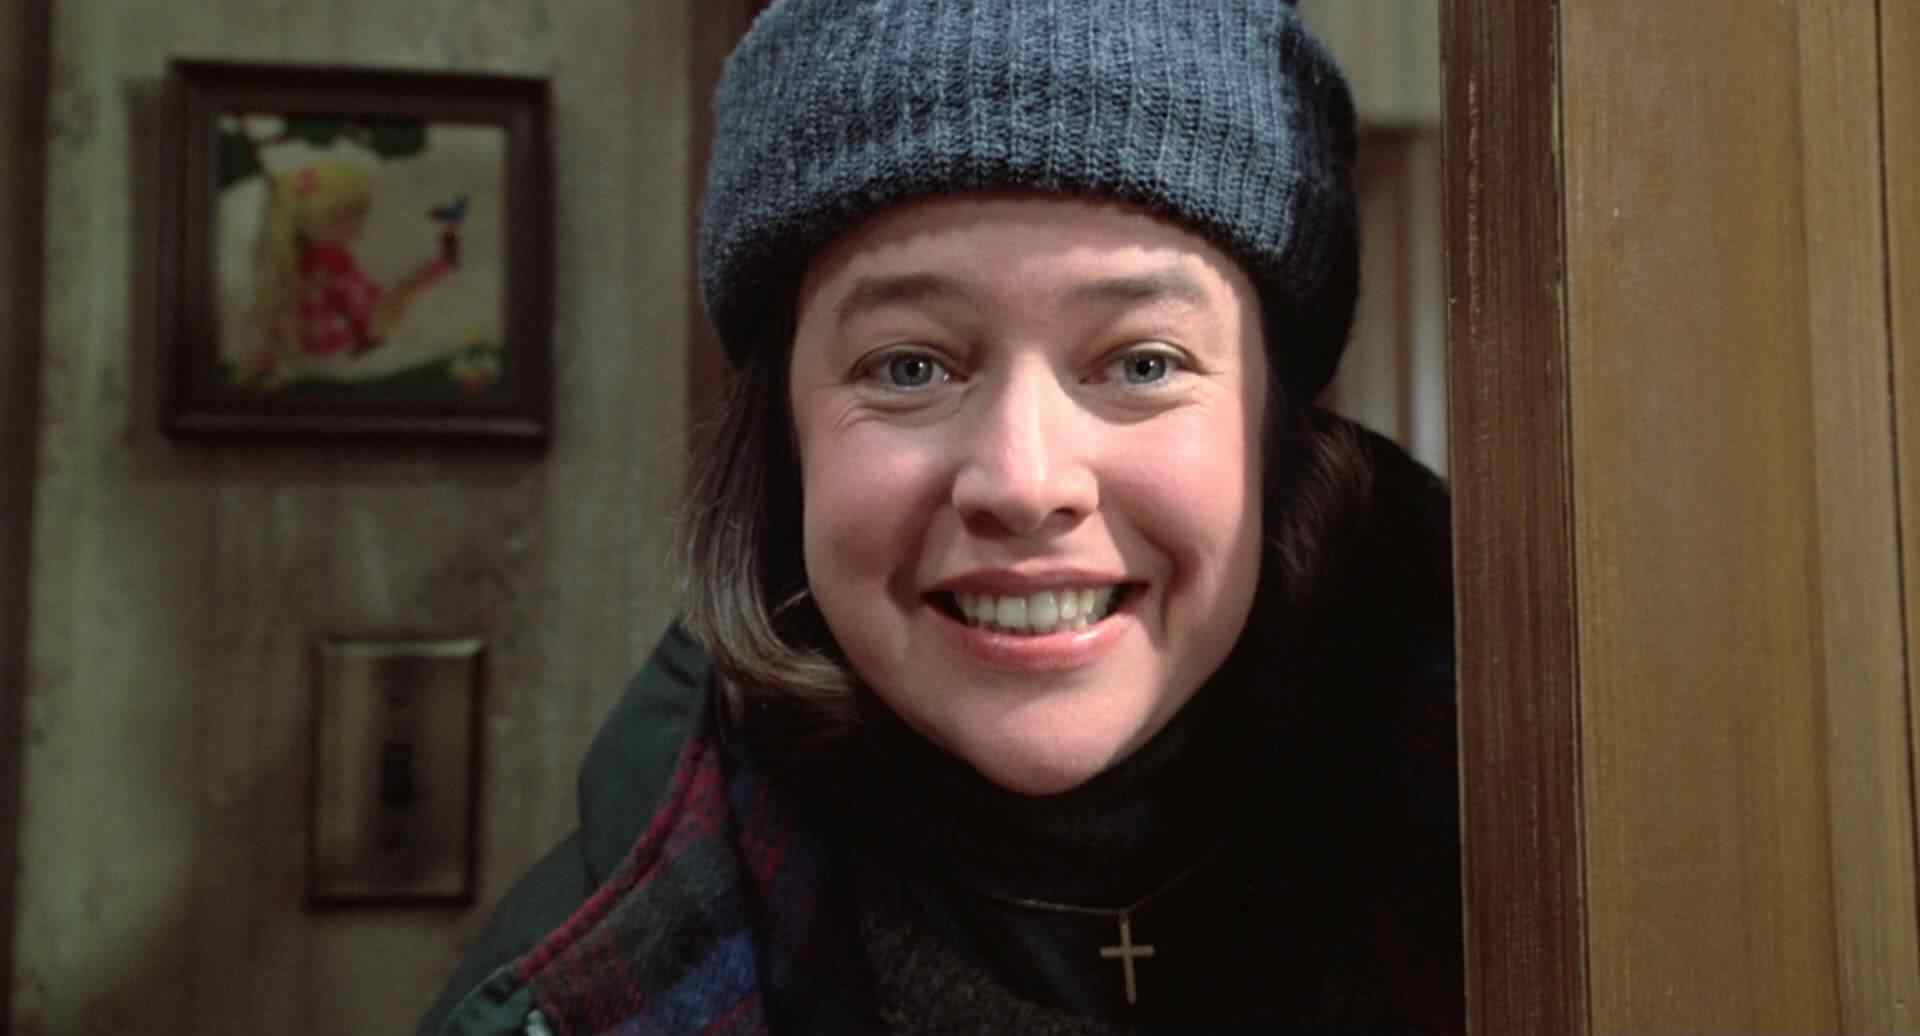 Annie Wilkes (Kathy Bates) looking creepy in her Oscar winning turn in Misery.